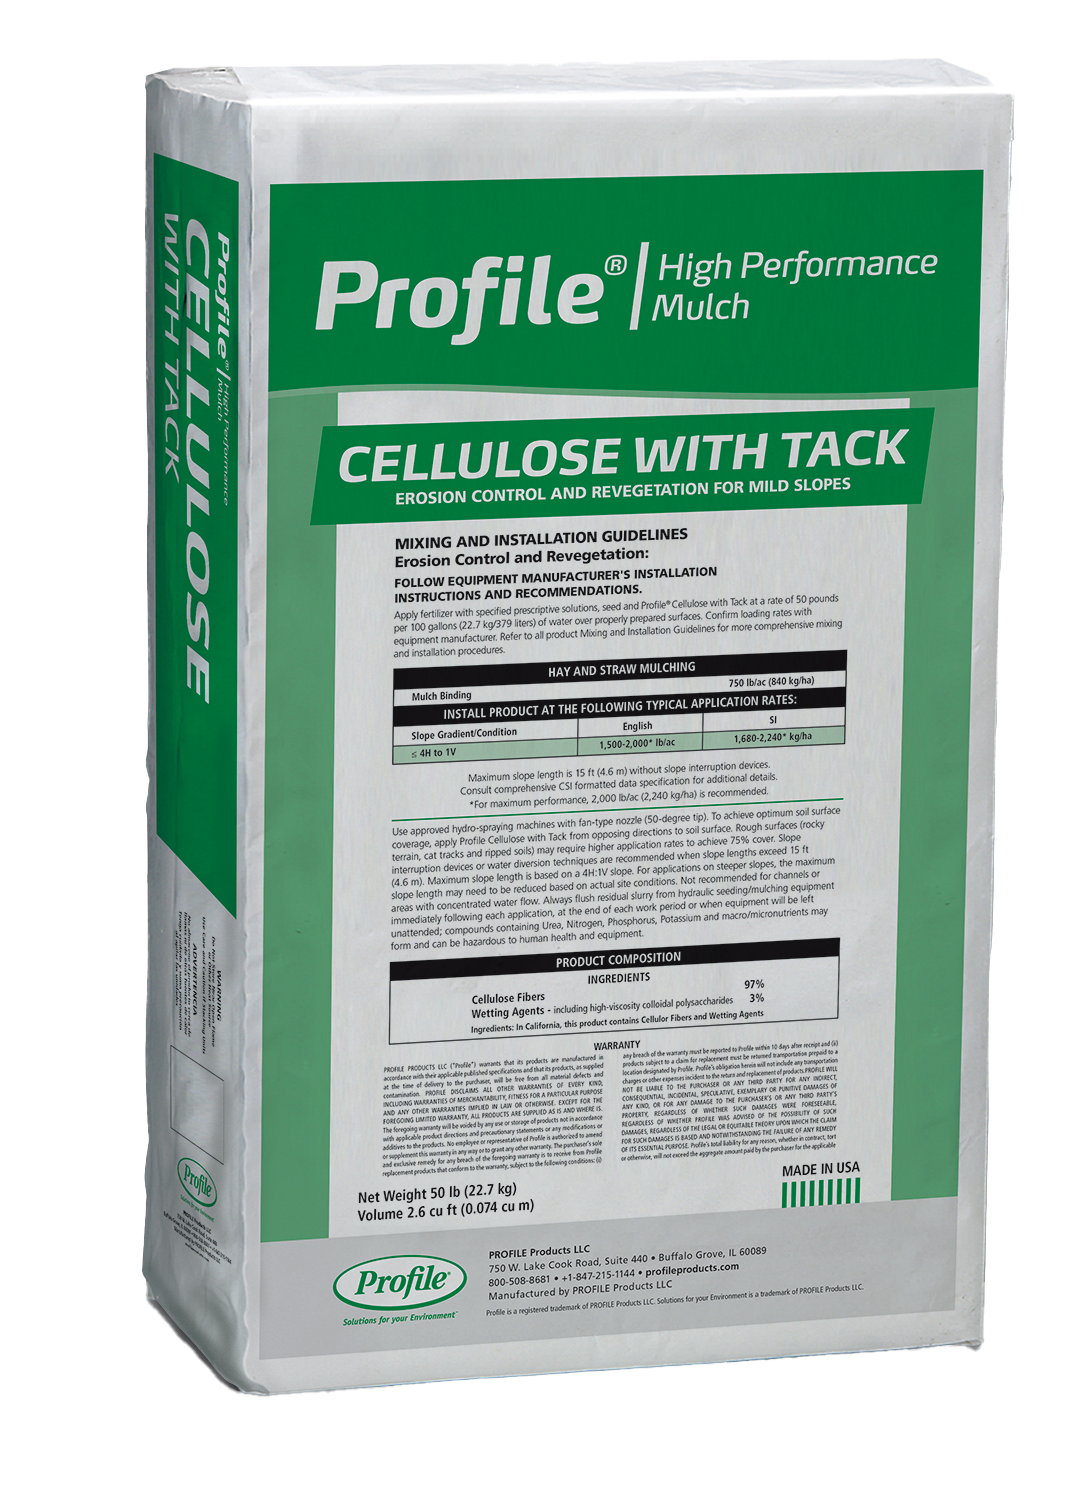 Profile Cellulose Mulch with Tack Product Image